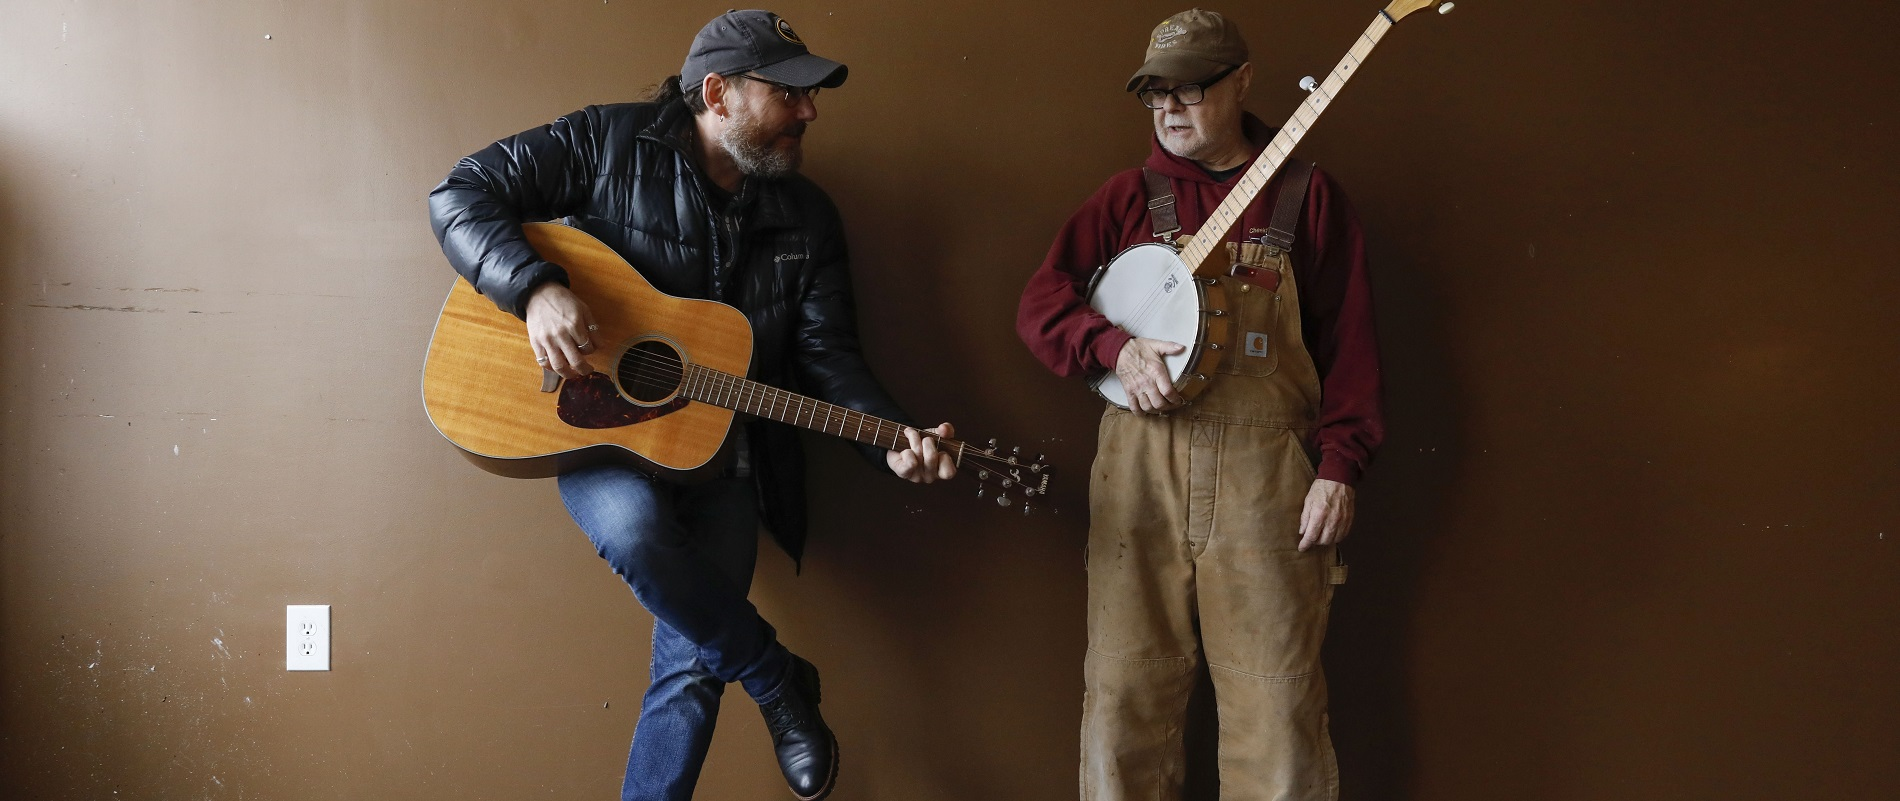 Dave Ostrowski, left, known as 'Davey O,' and Mark Buell, owner of Nickel City Arts in Akron, have built a music series dubbed Nickel City Sessions. (Derek Gee/Buffalo News)